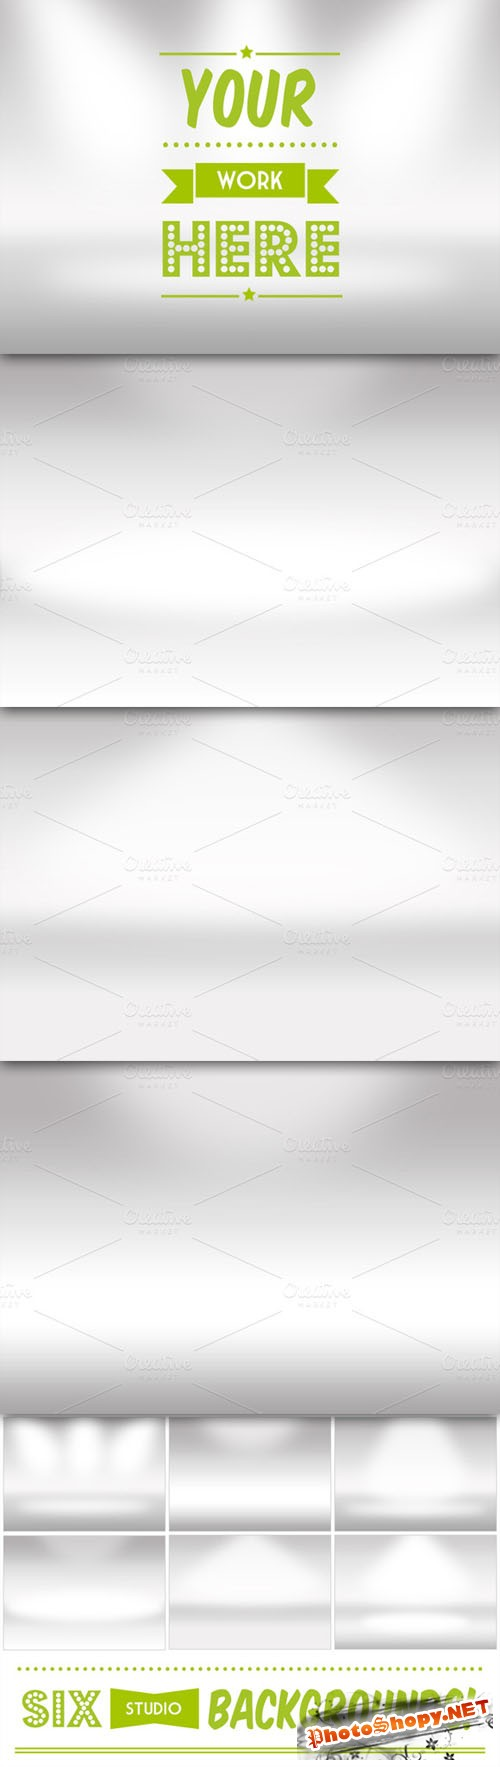 Creativemarket - 6 Infinite White Room Backgrounds